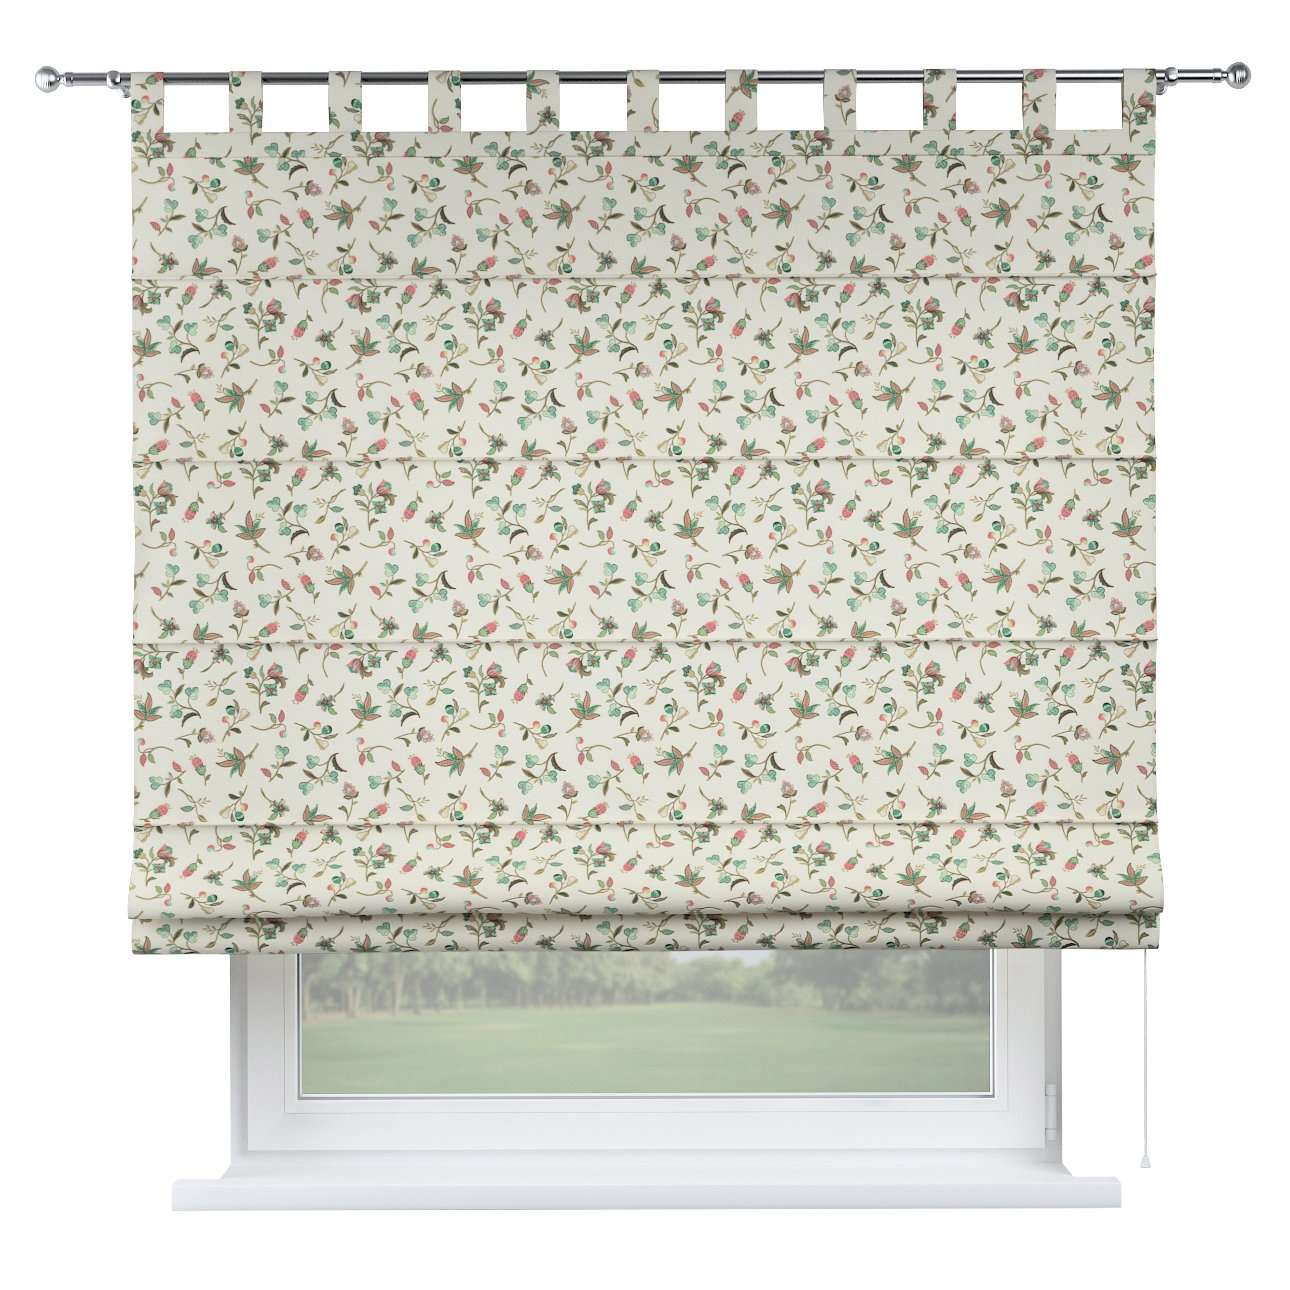 Verona tab top roman blind 80 × 170 cm (31.5 × 67 inch) in collection Londres, fabric: 122-02